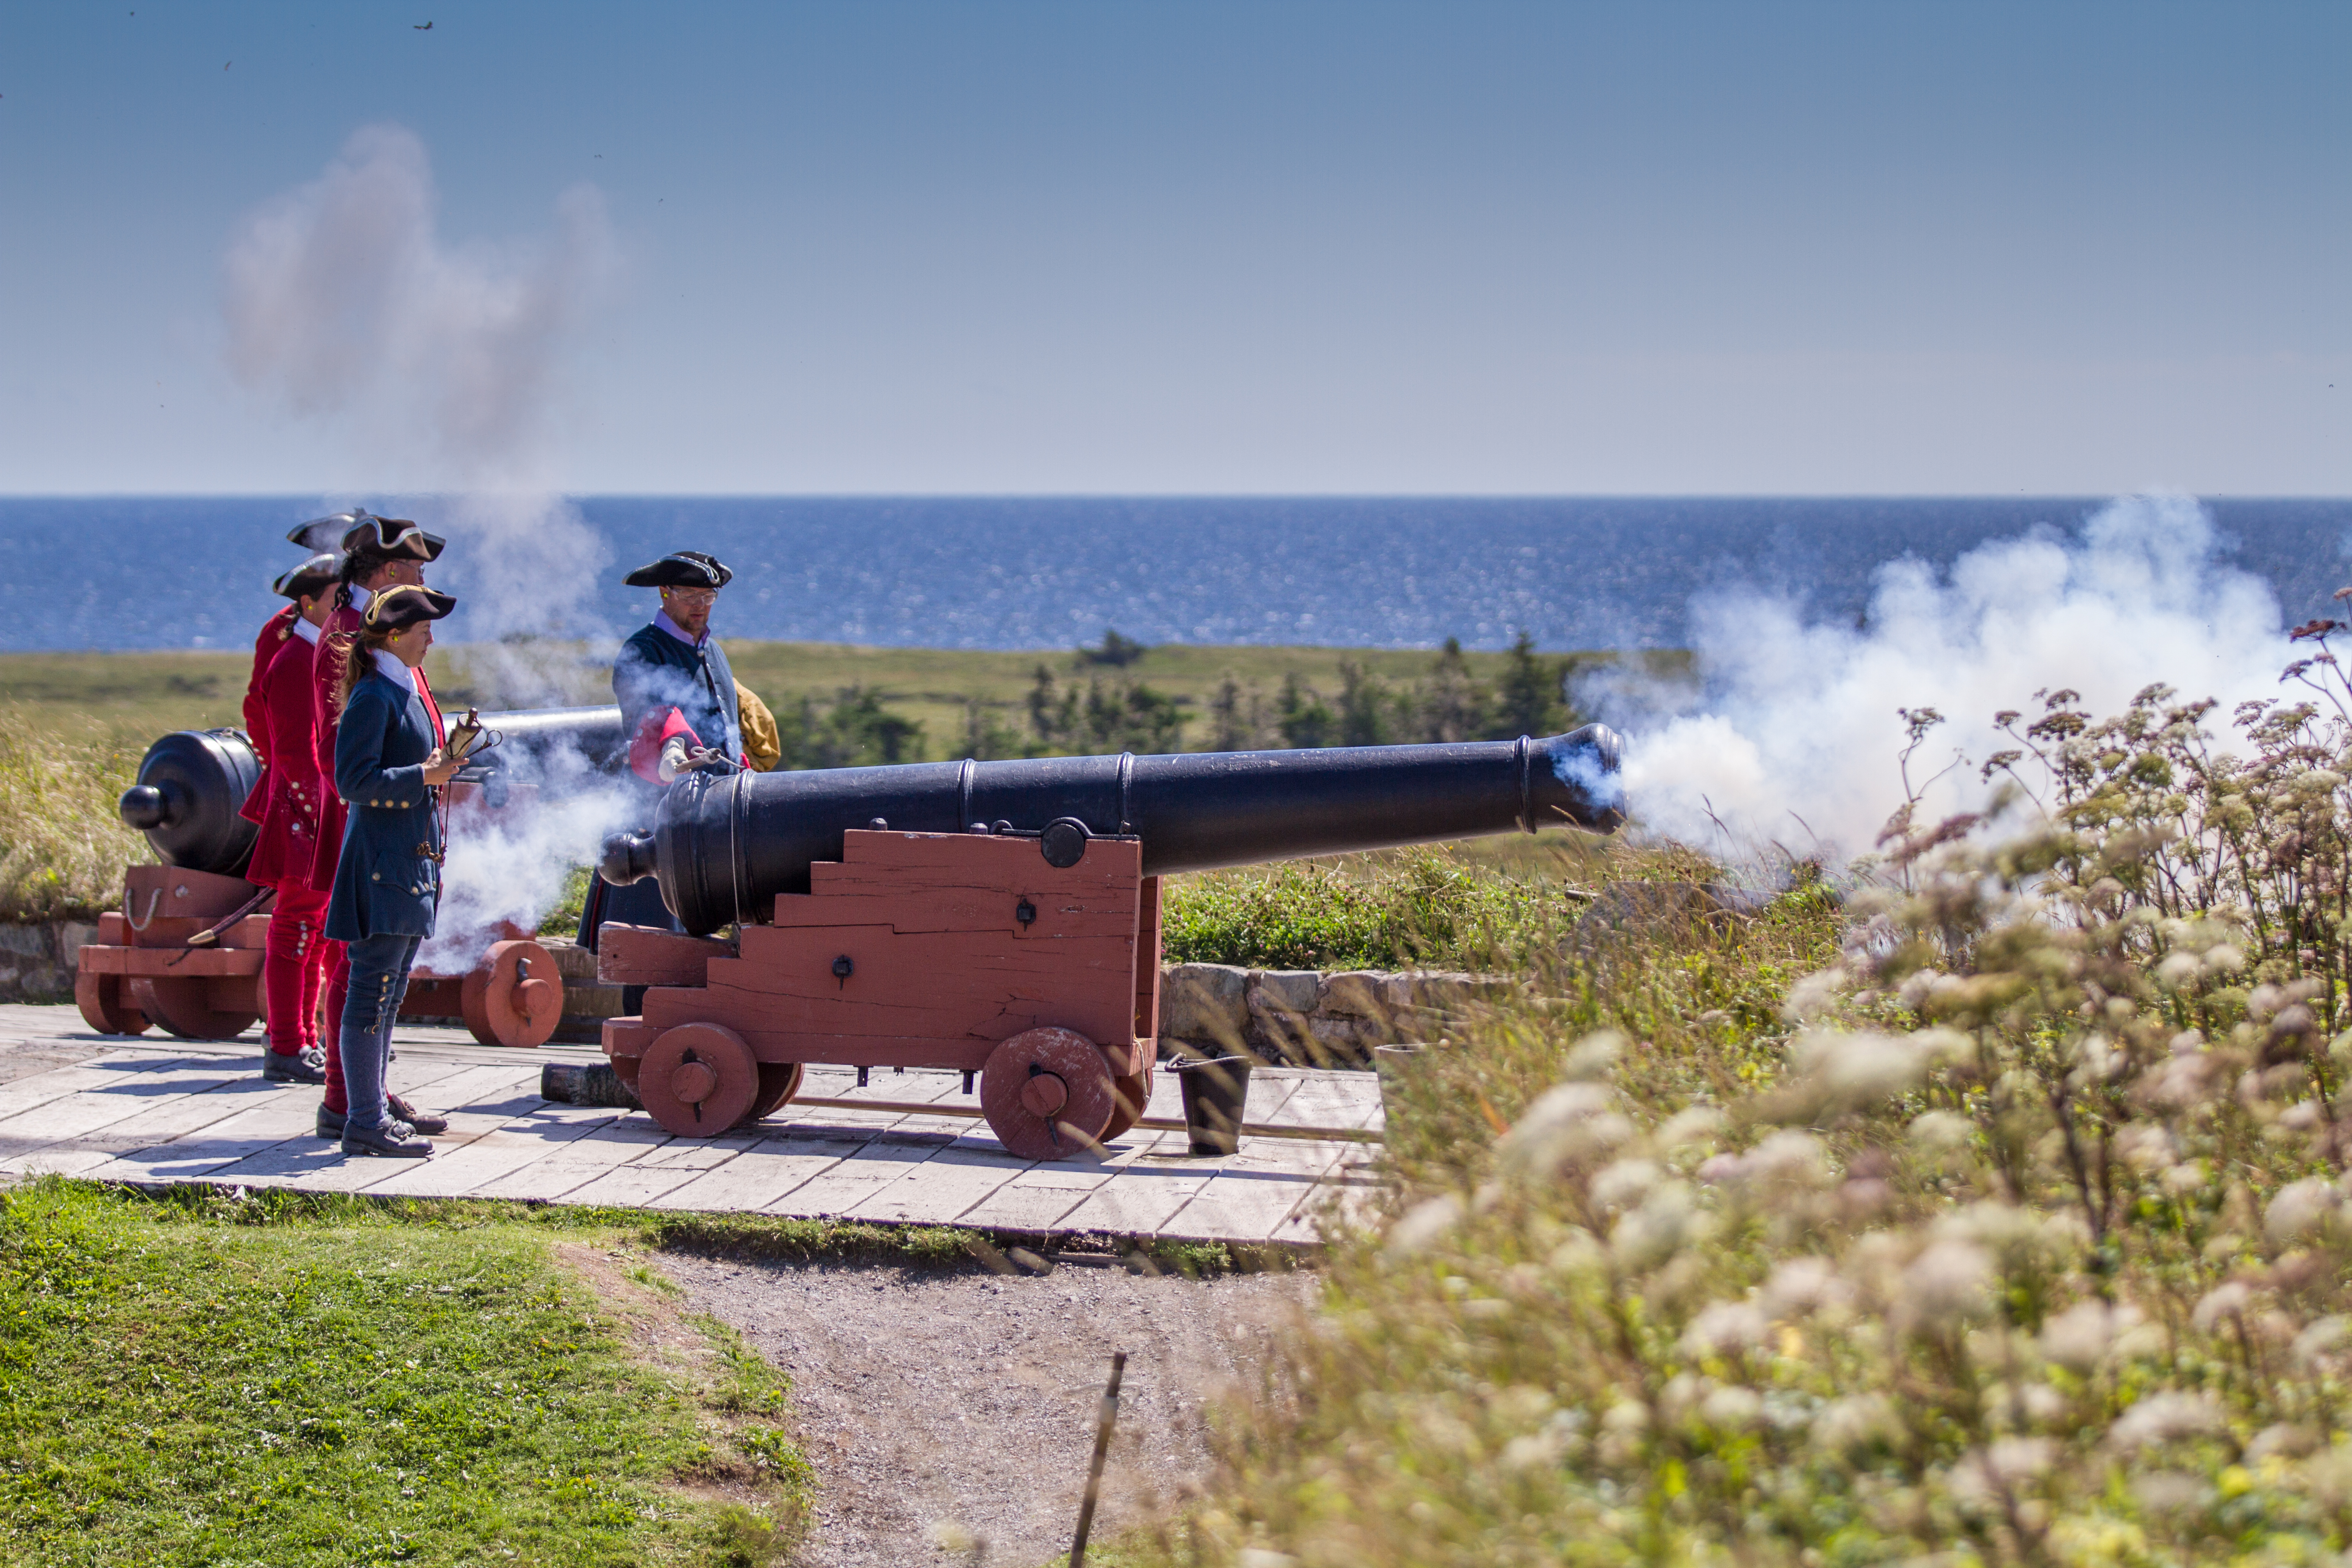 Fortress of Louisbourg – Cannon Firing  & Musket Firing